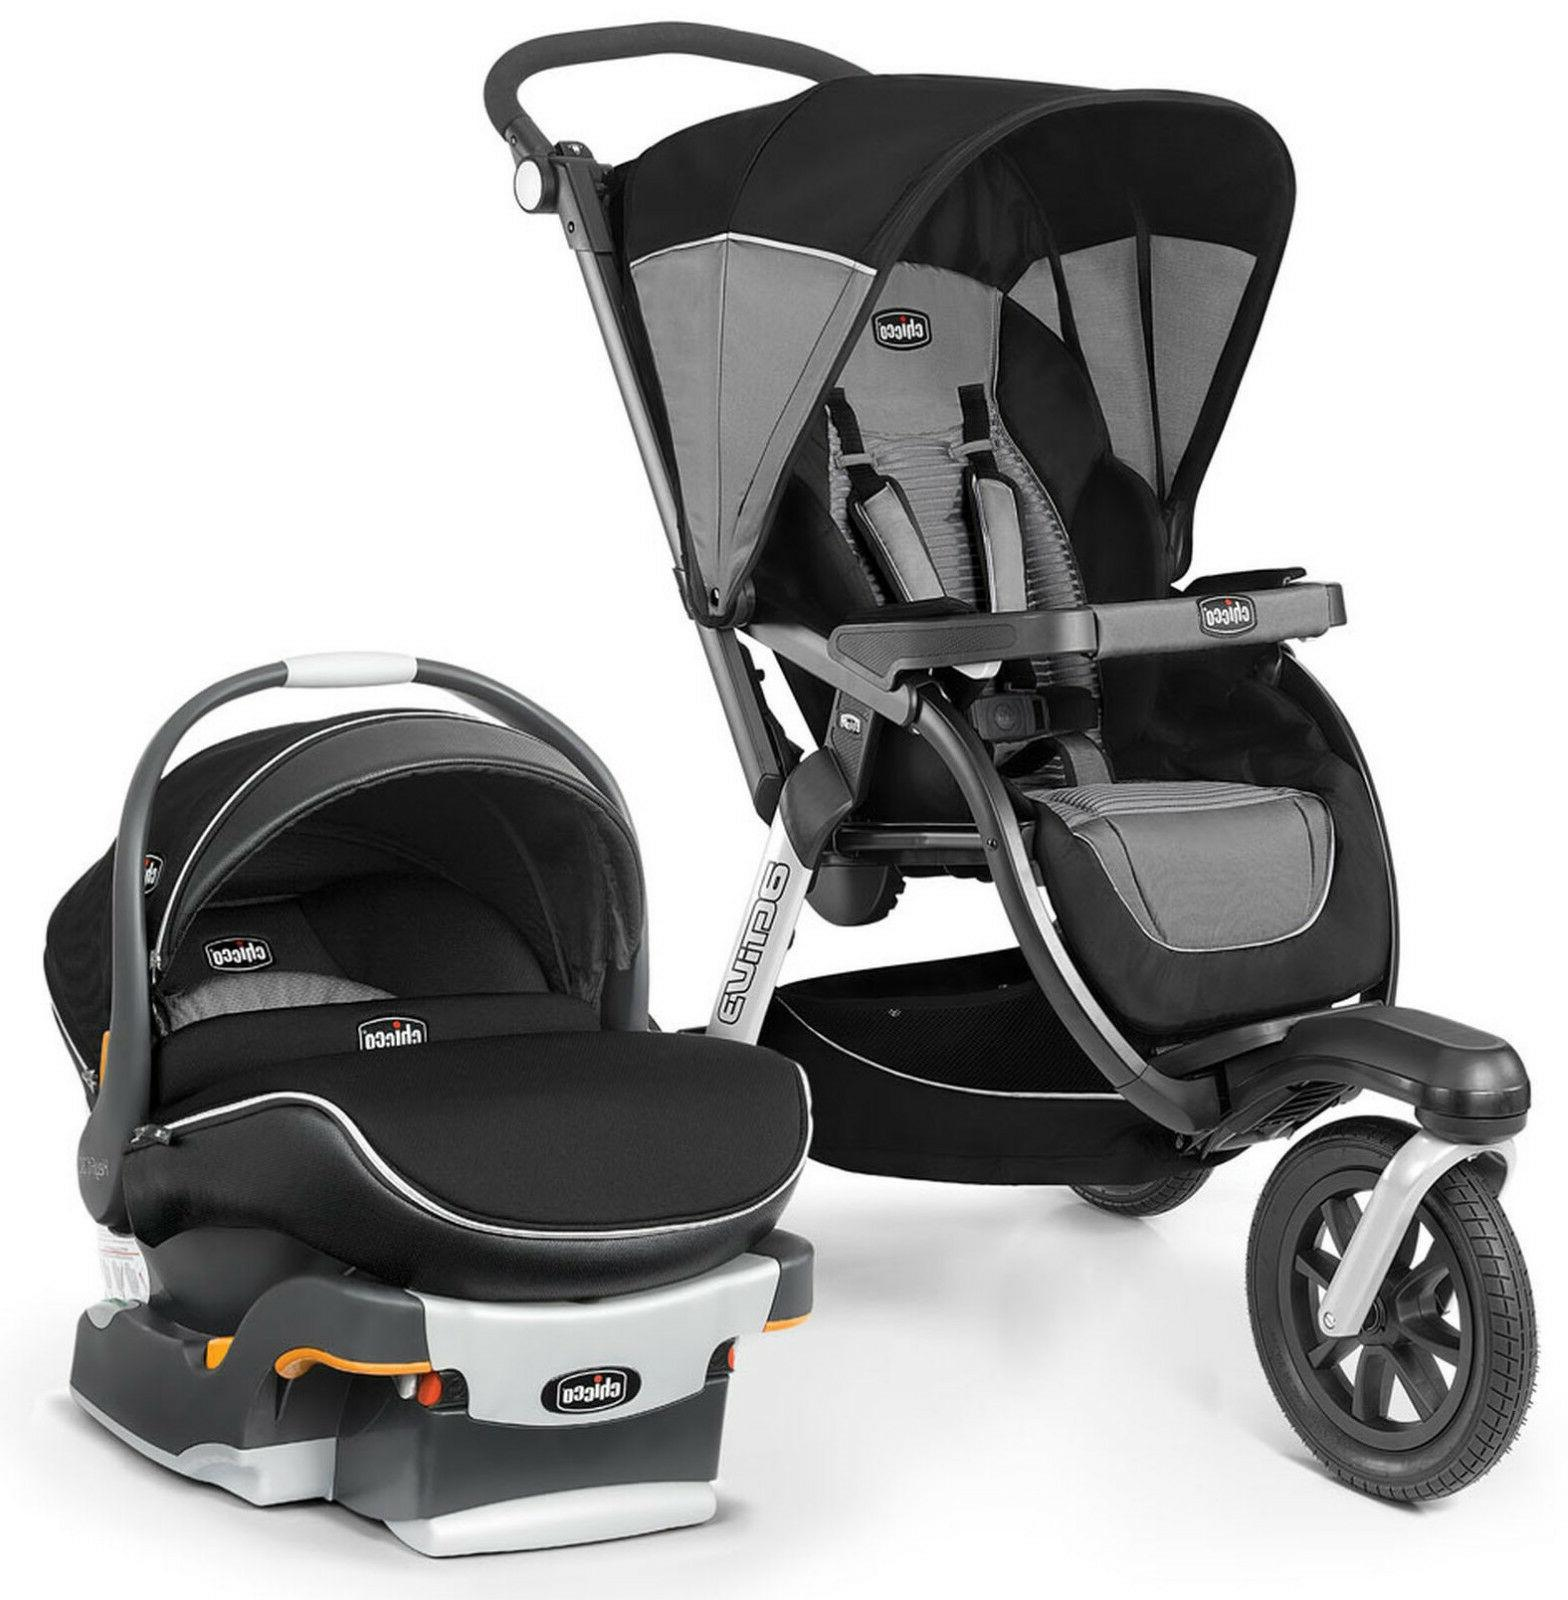 activ3 air one hand fold baby jogger